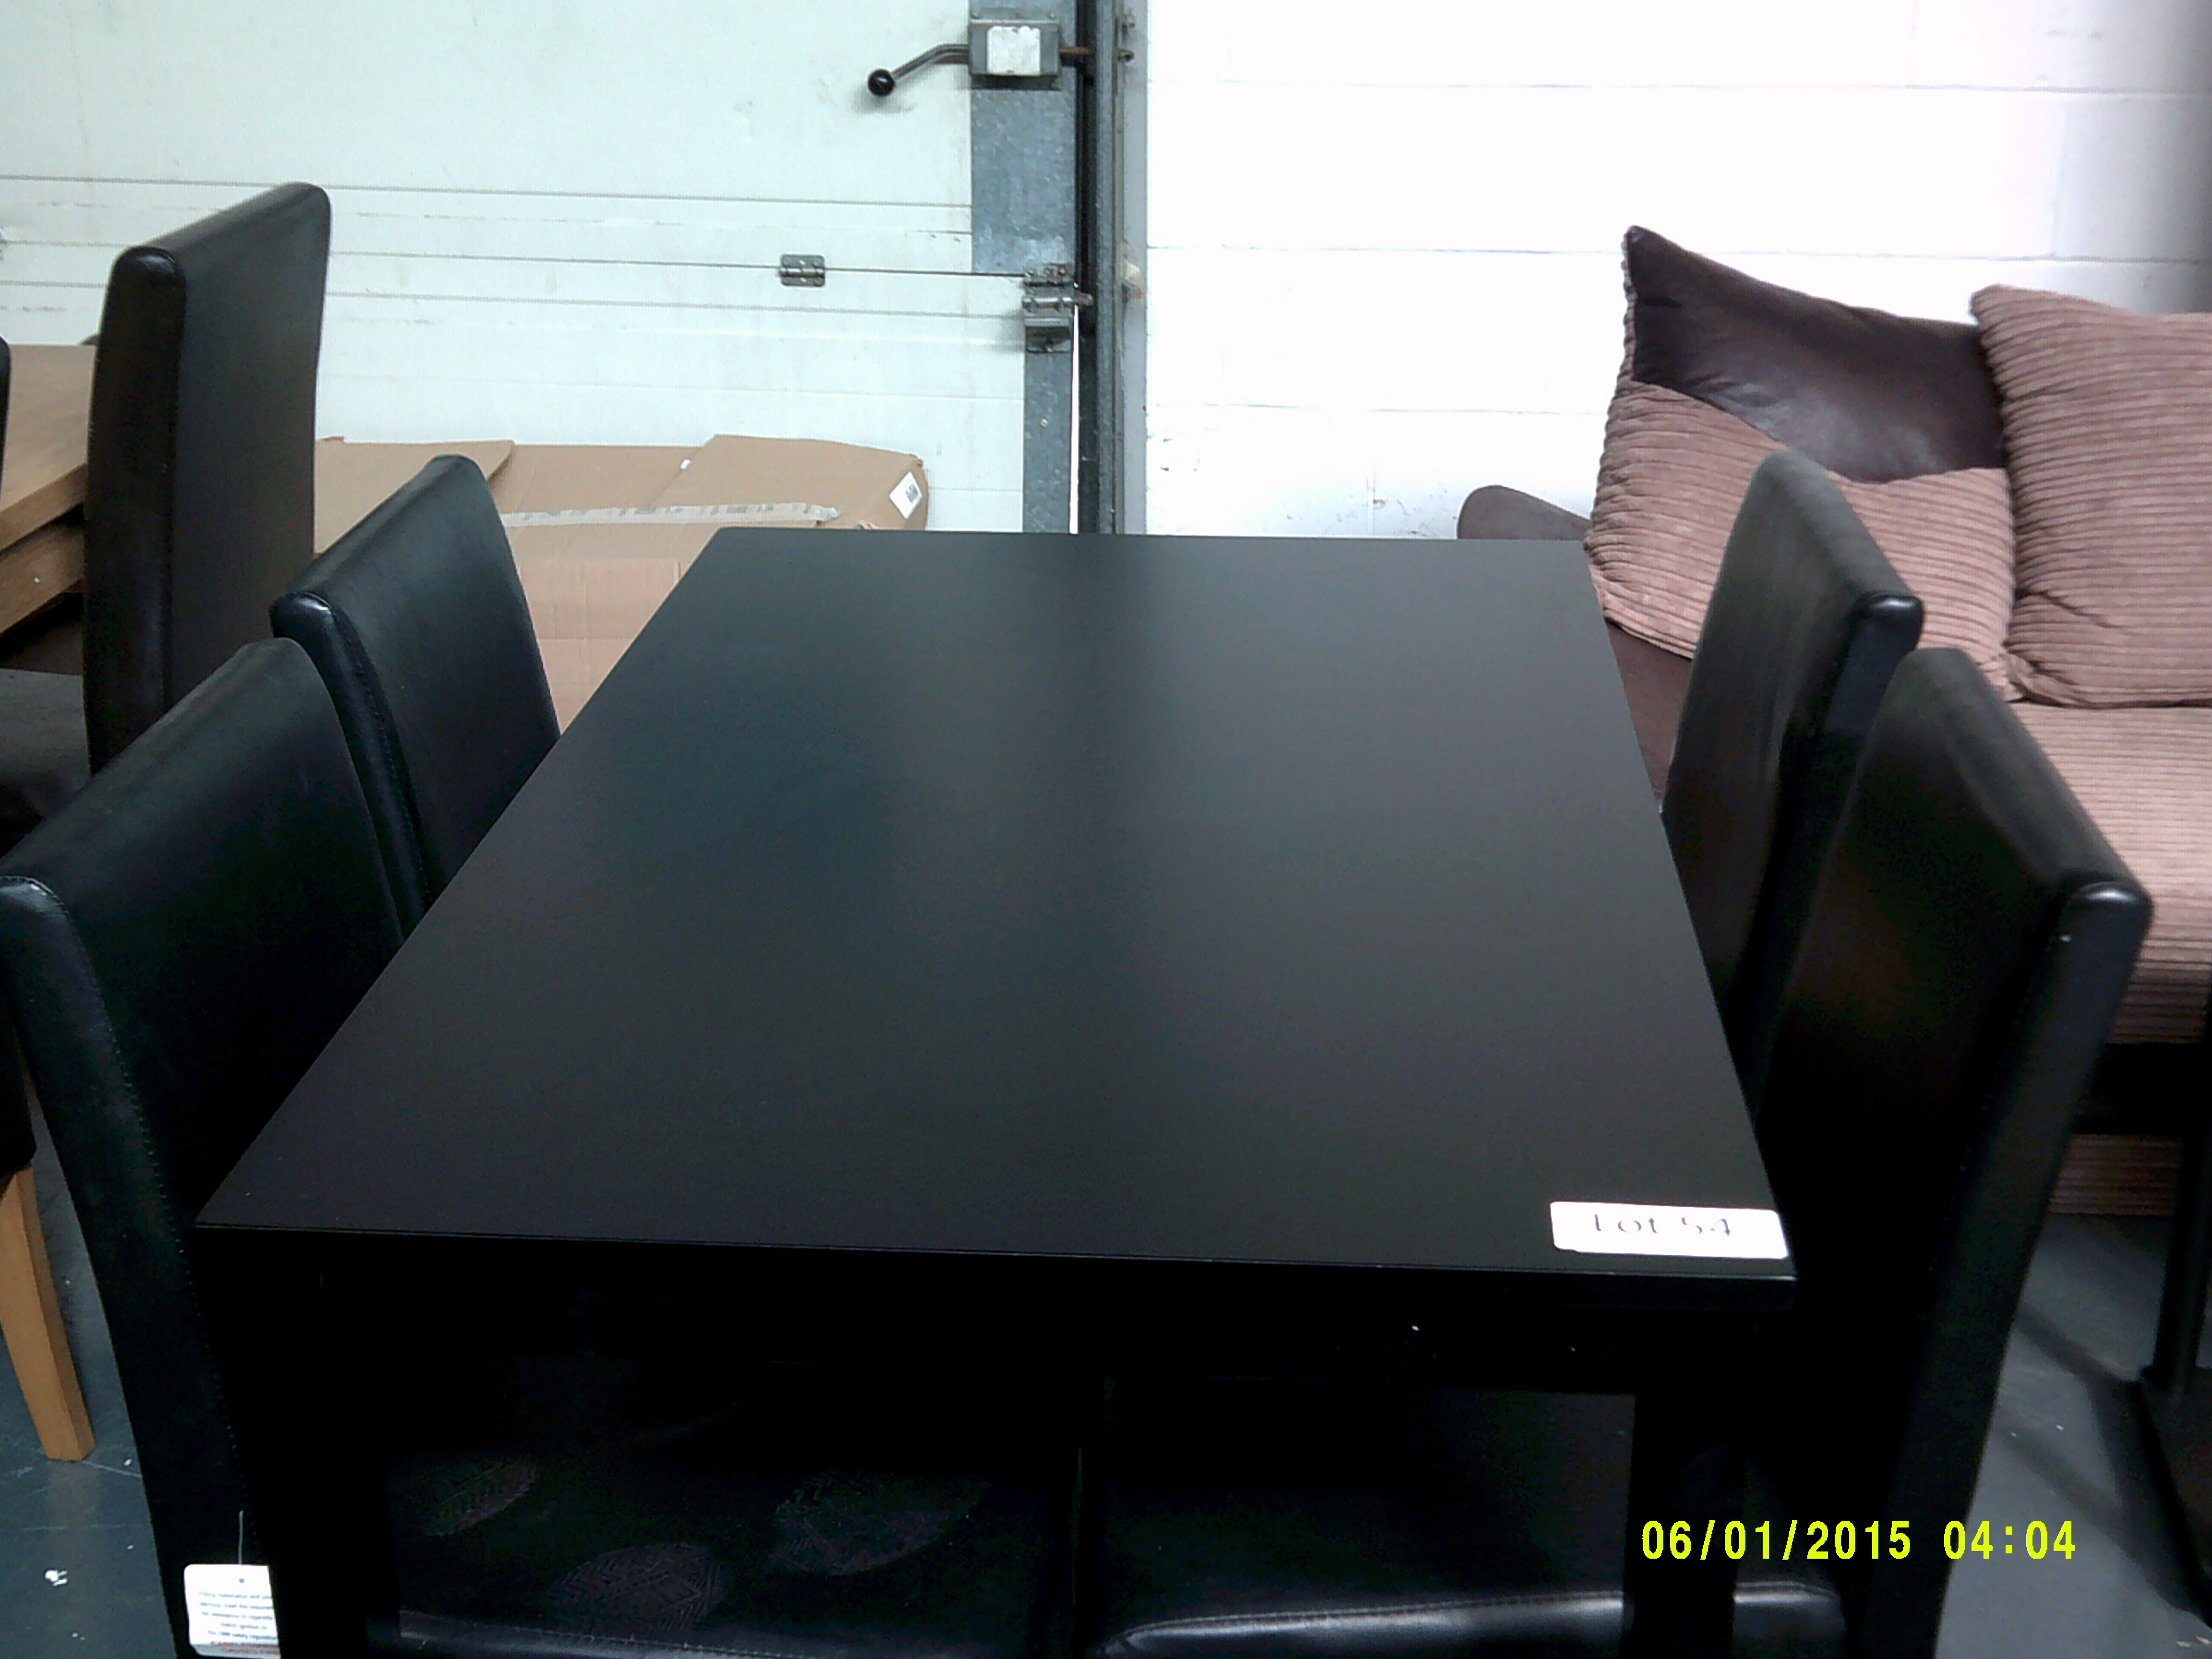 Lot 54 - Black Dining Table & 4 Chairs Customer Returns